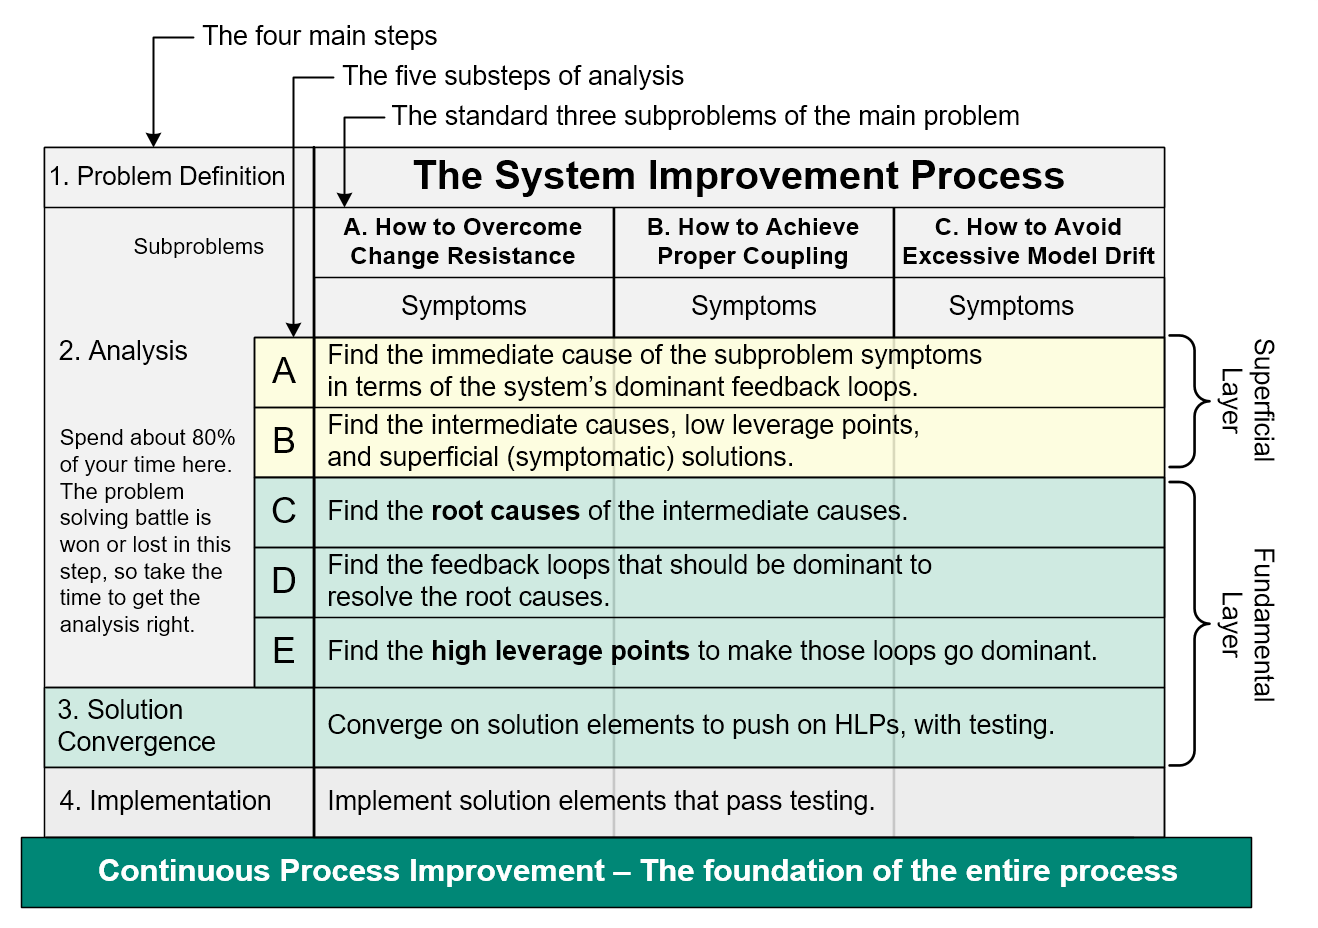 the goal of systems analysis is to determine